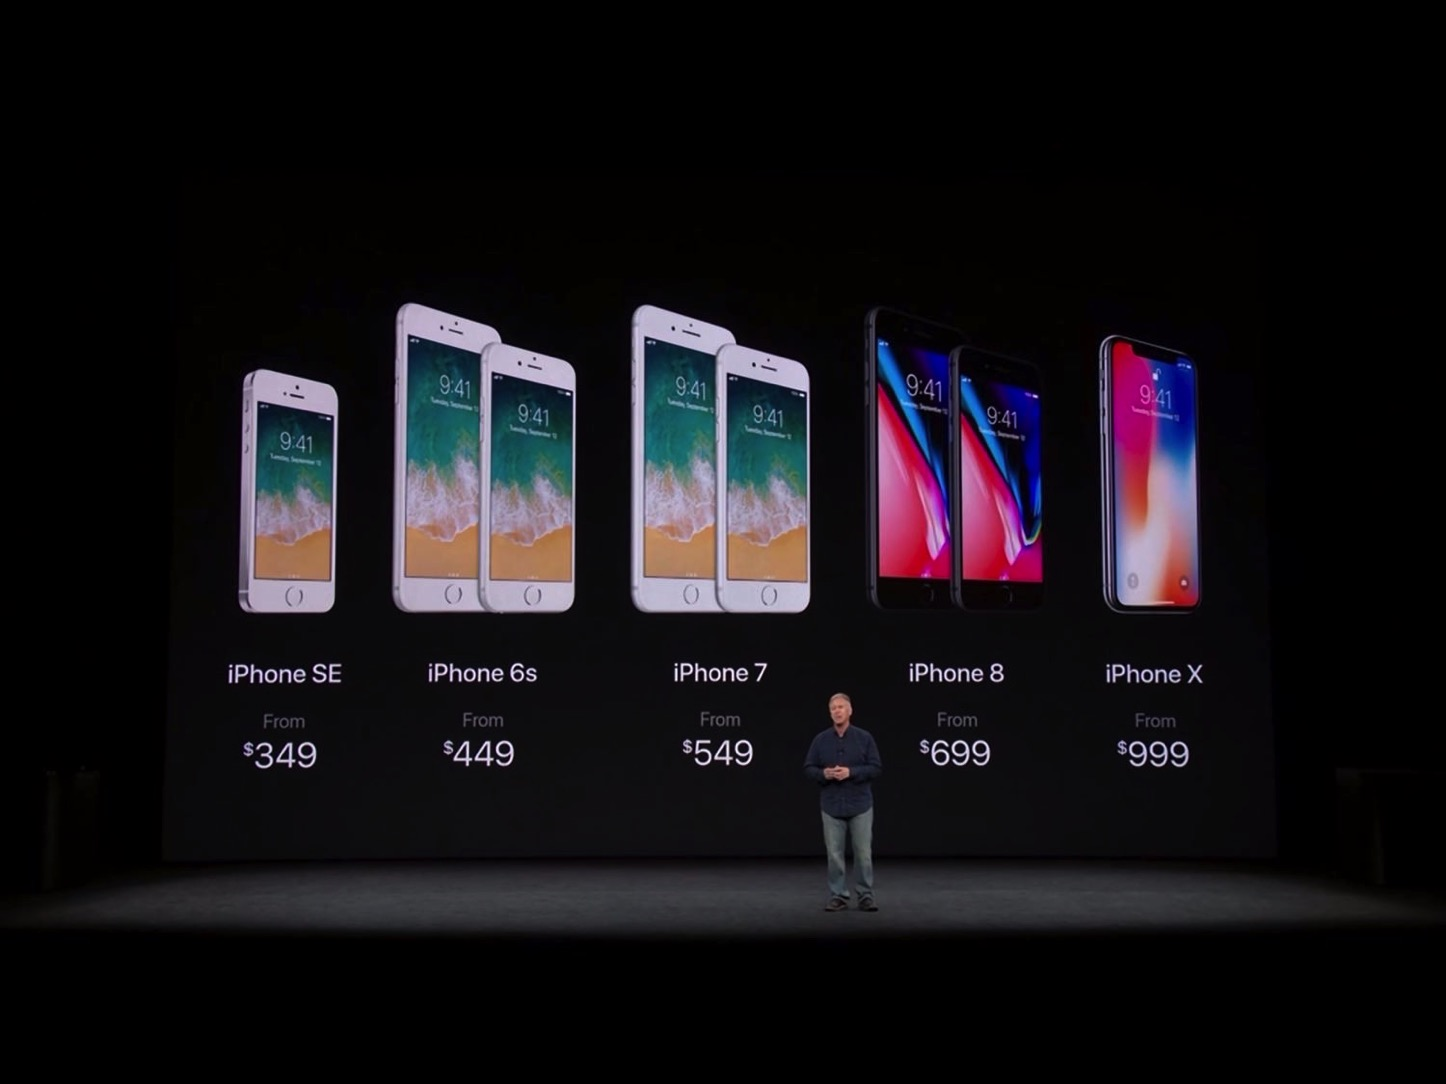 iphone-x-pricing-01.jpg